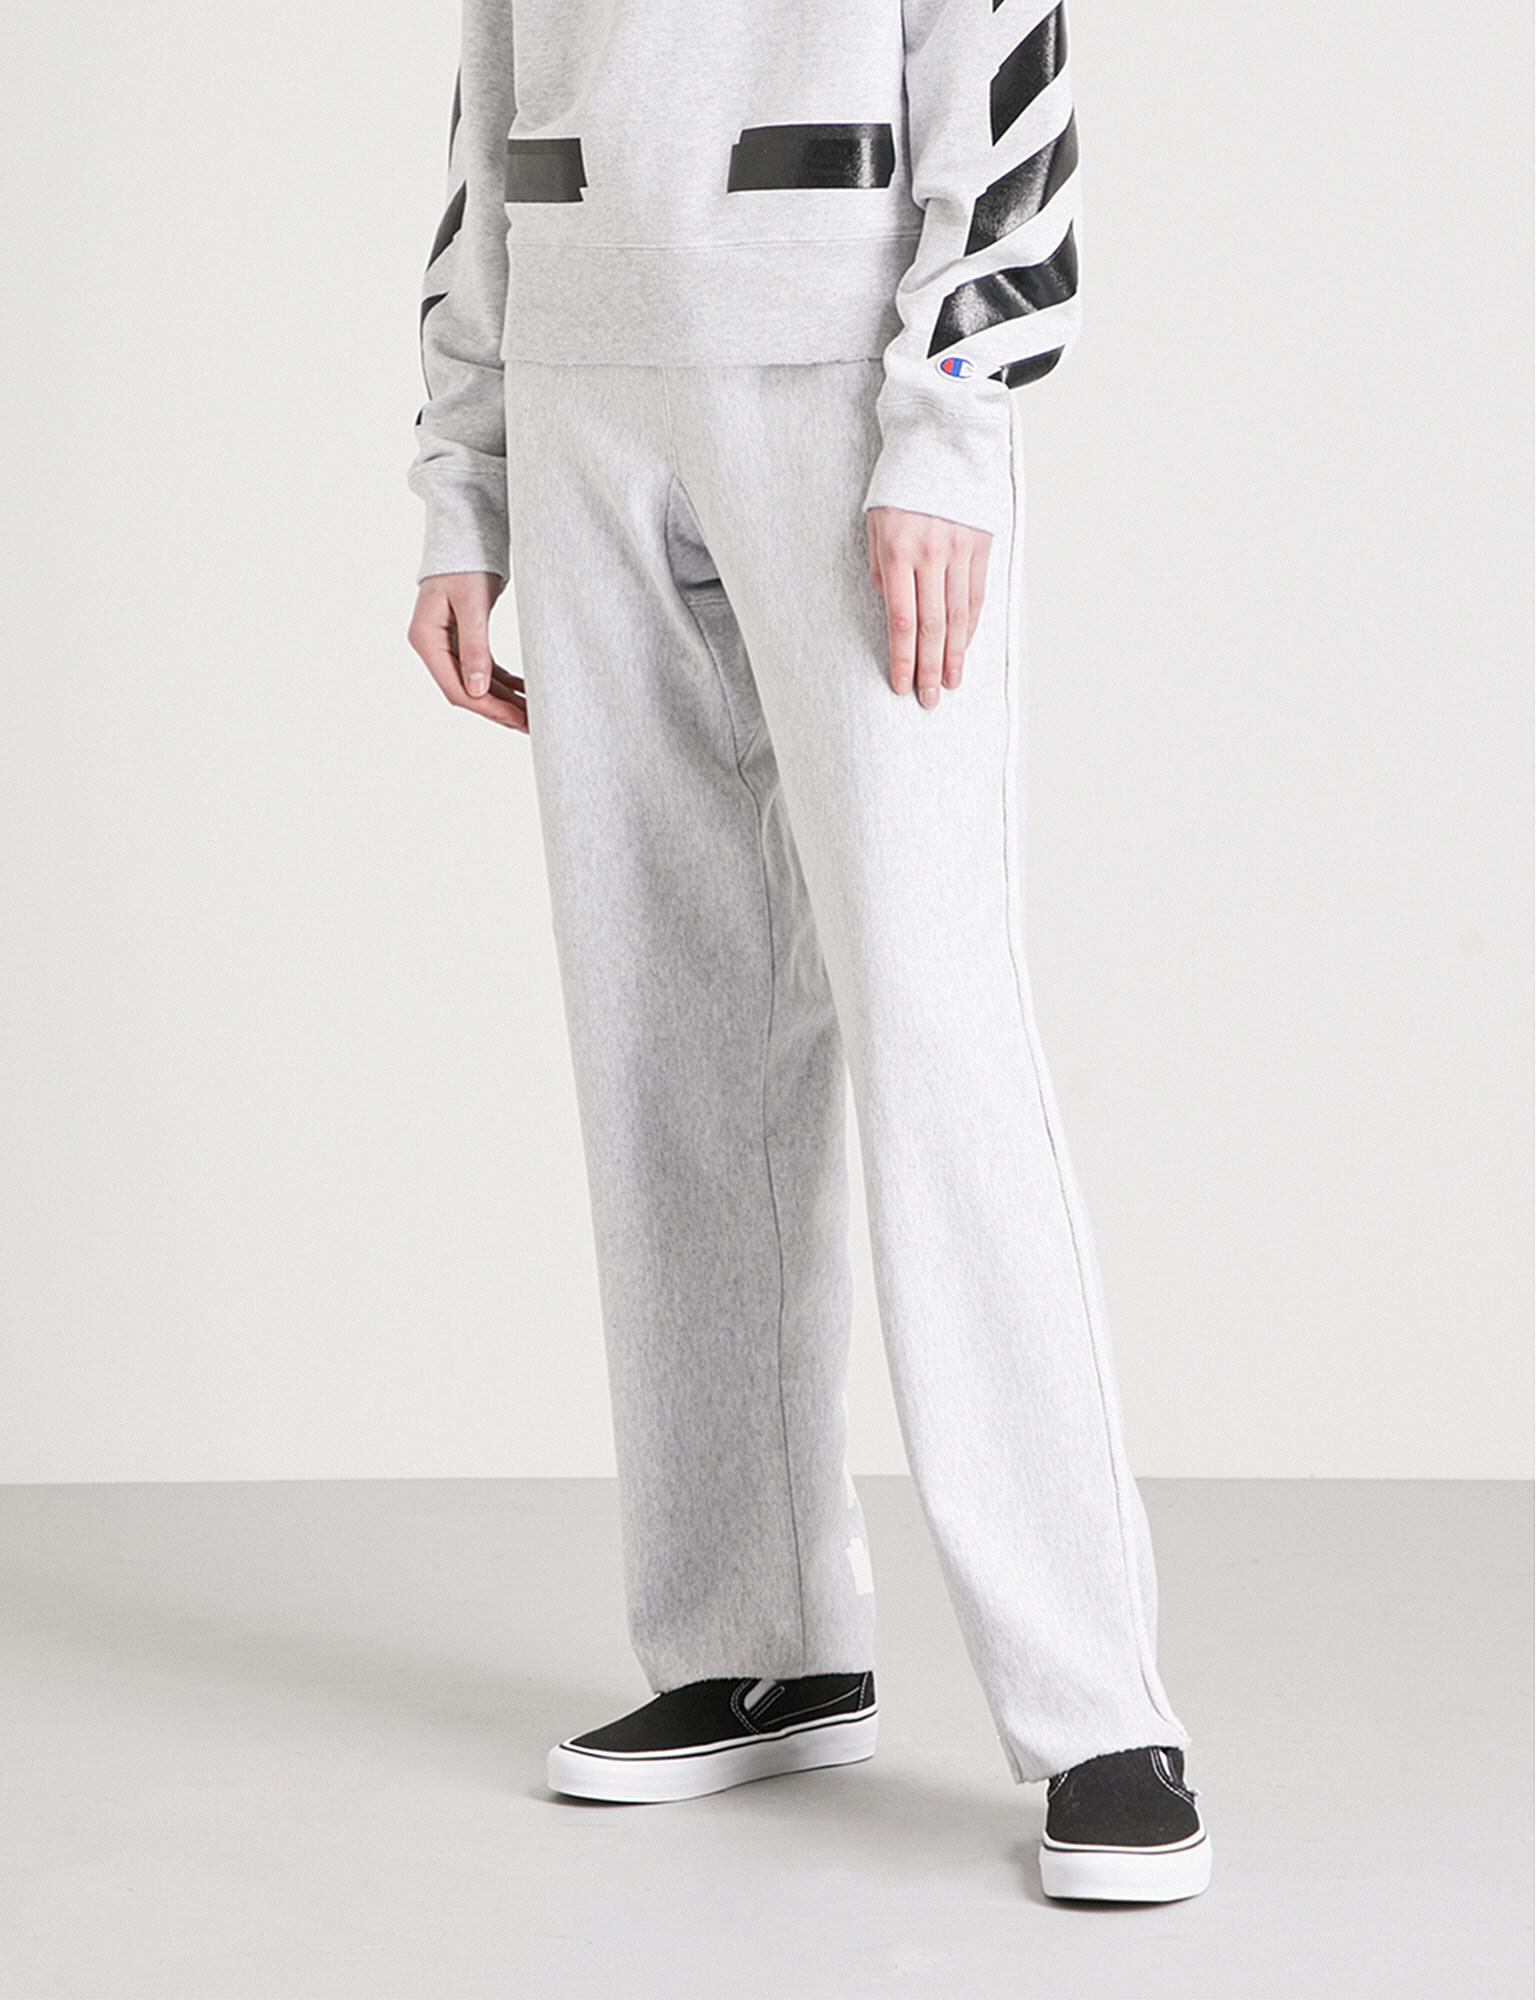 645690f5 Off-White c/o Virgil Abloh Champion Cotton-blend Jogging Bottoms in ...